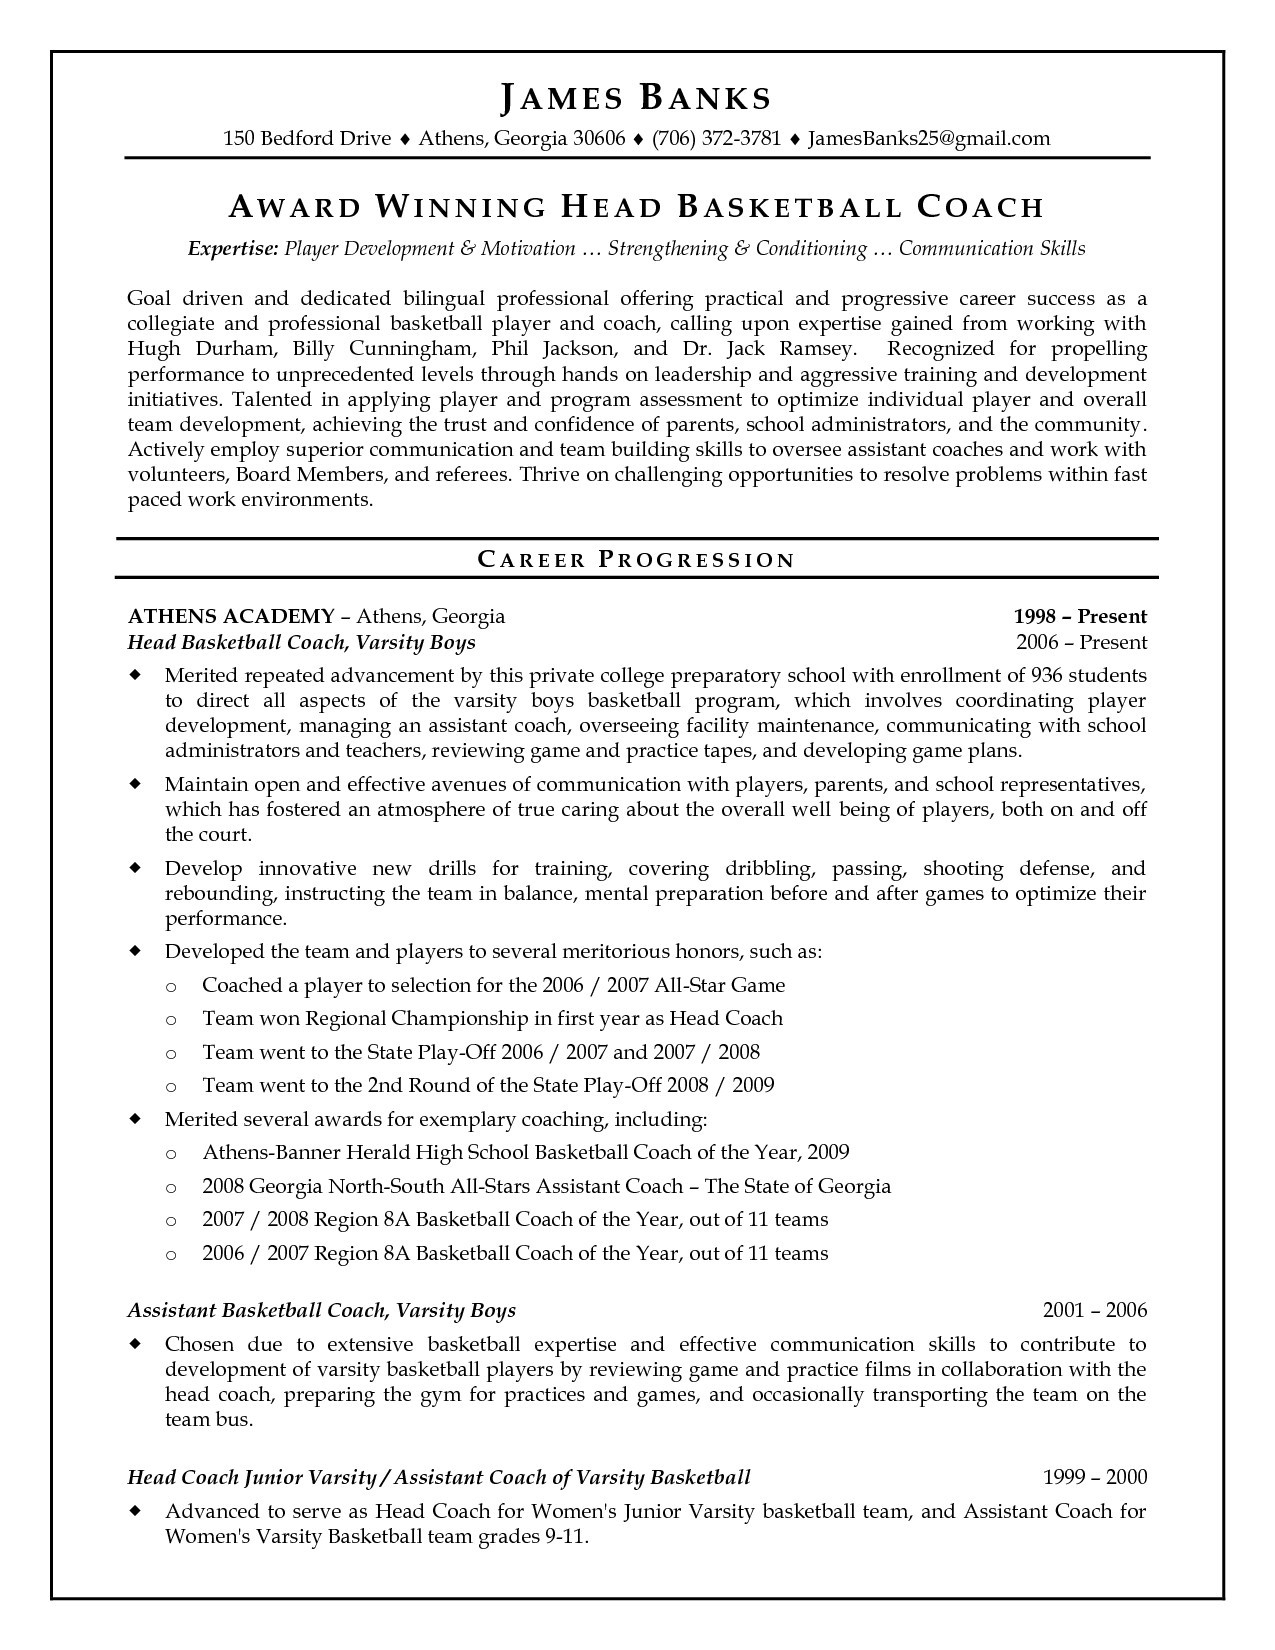 Basketball Resume Template for Player - Basketball Resume Examples 62 top Template for Player Collections